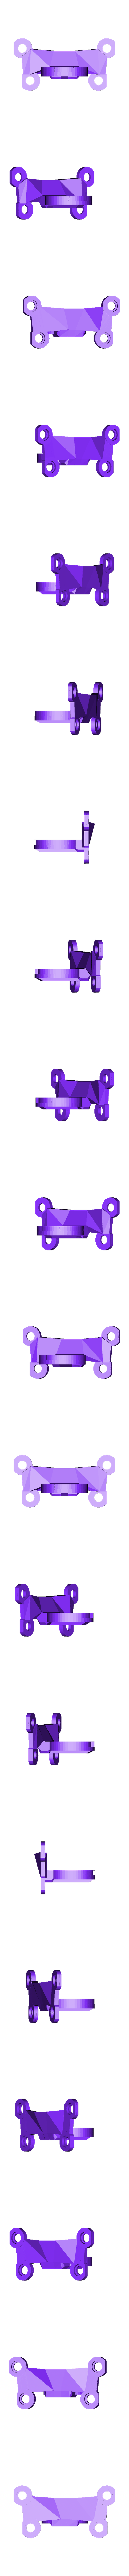 Sp_drone_gimbal_roll.stl Download free STL file Runcam Split gimbal arm... • 3D printing template, mwilmars